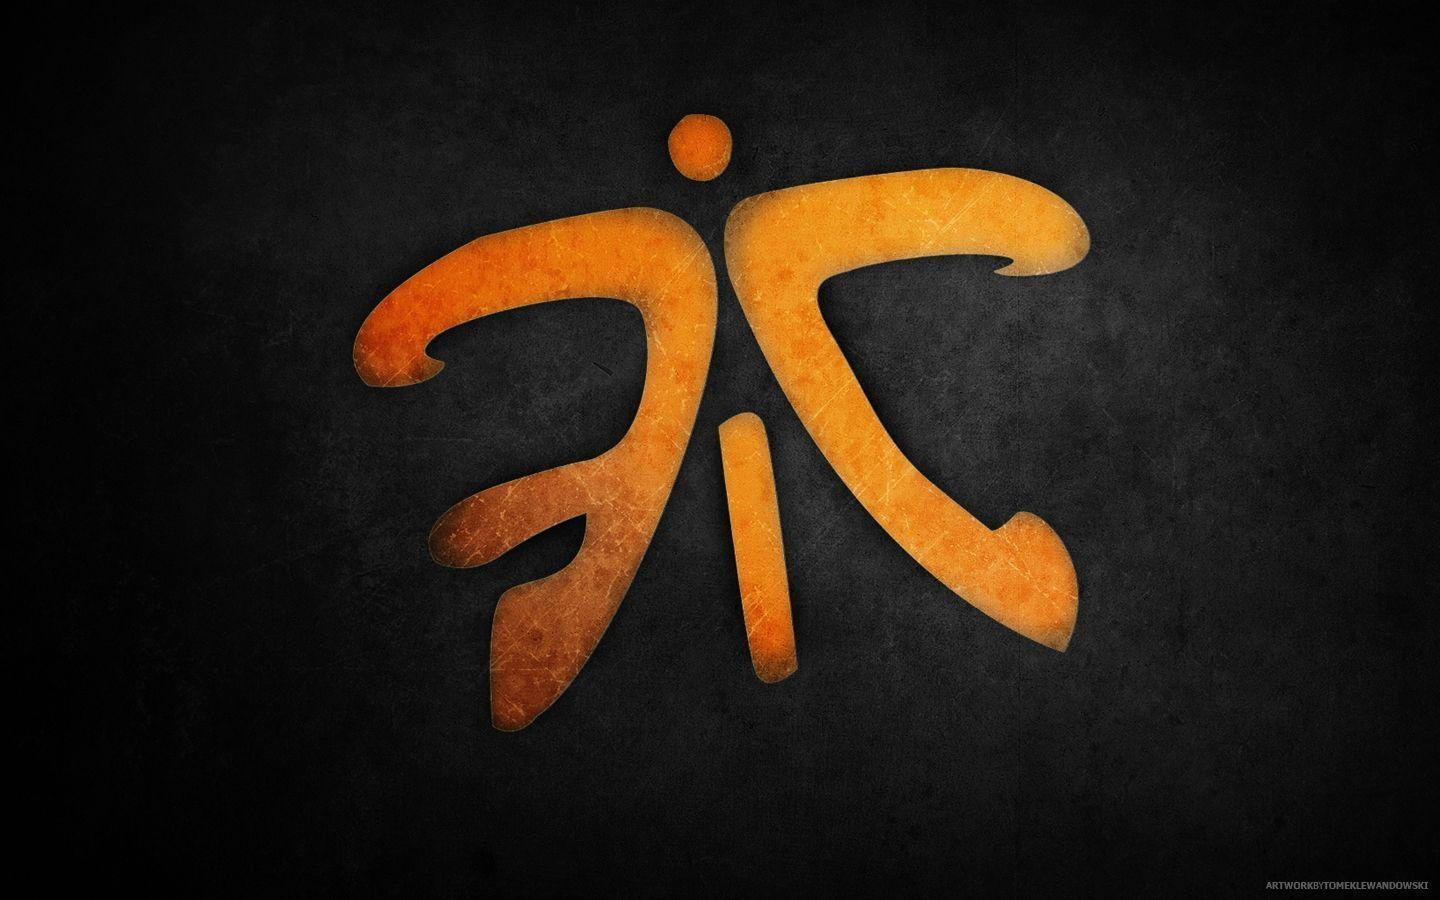 FNATIC: Fnatic wallpapers have arrived